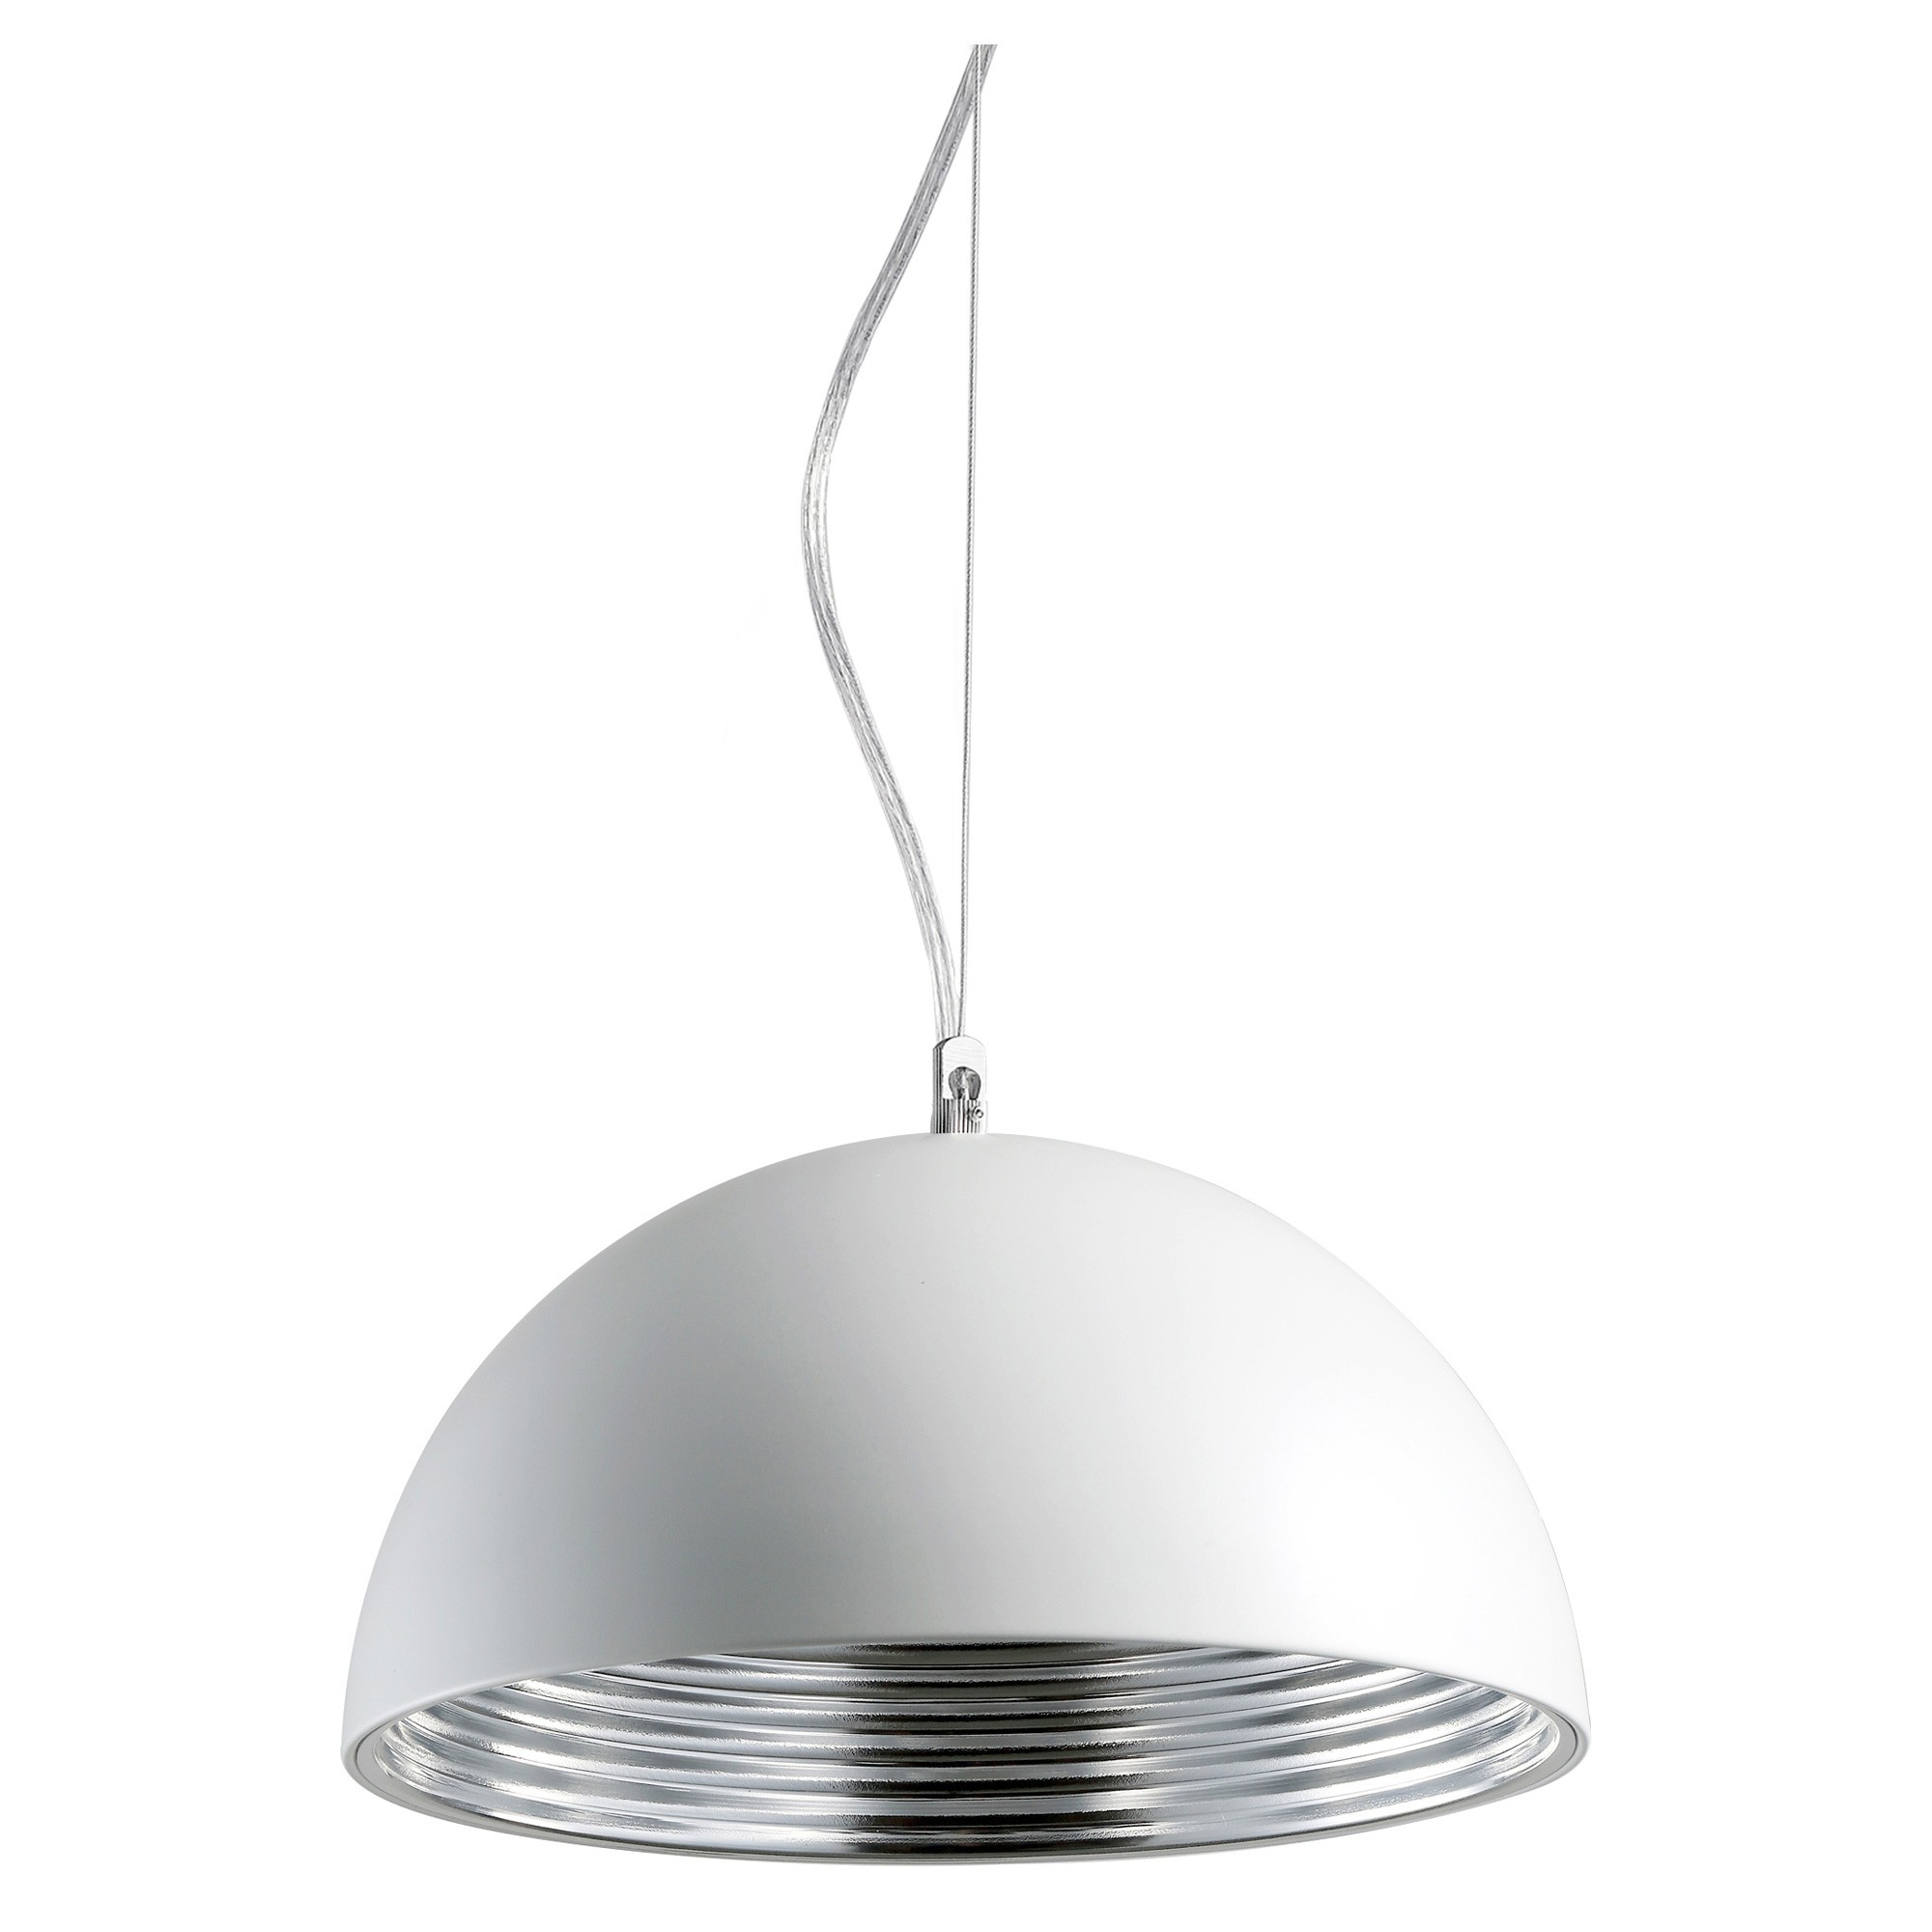 Suspension Blanche Suspension Studio Blanche Et Argent L